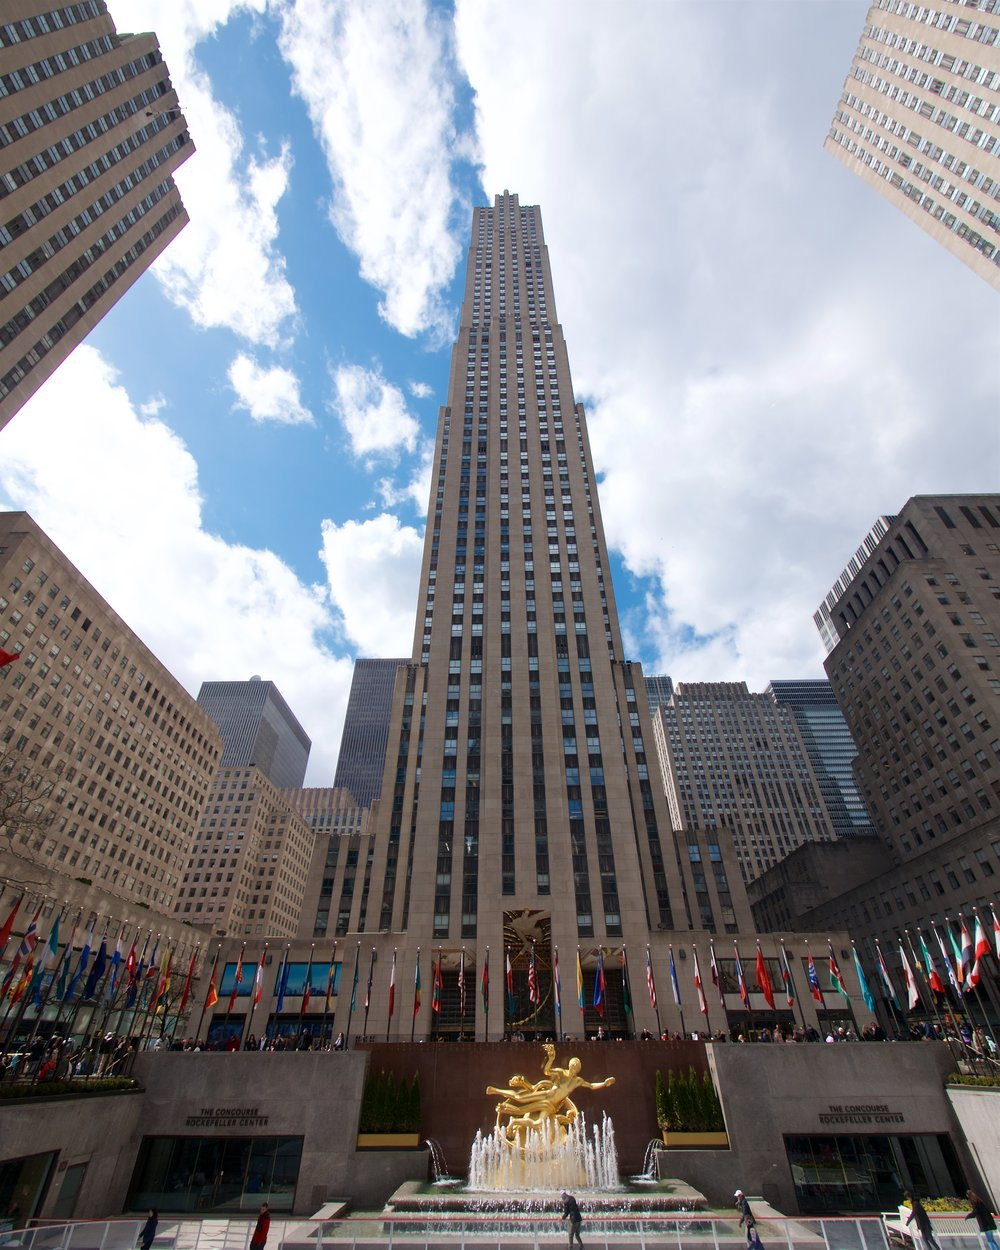 Comcast building, Rockefeller Center